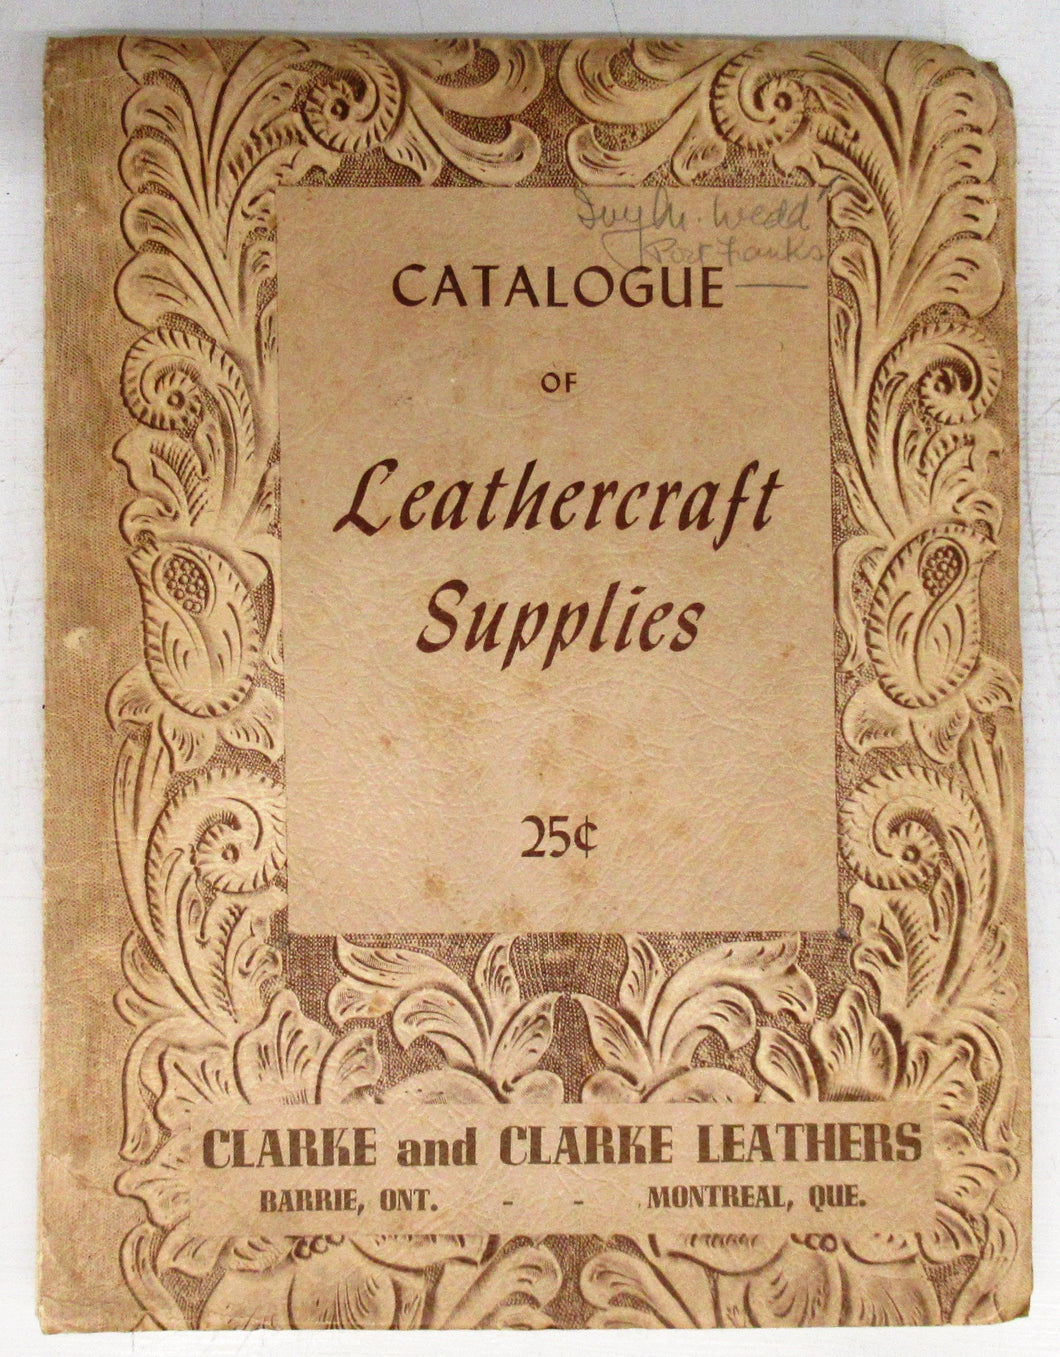 Catalogue of Leathercraft Supplies